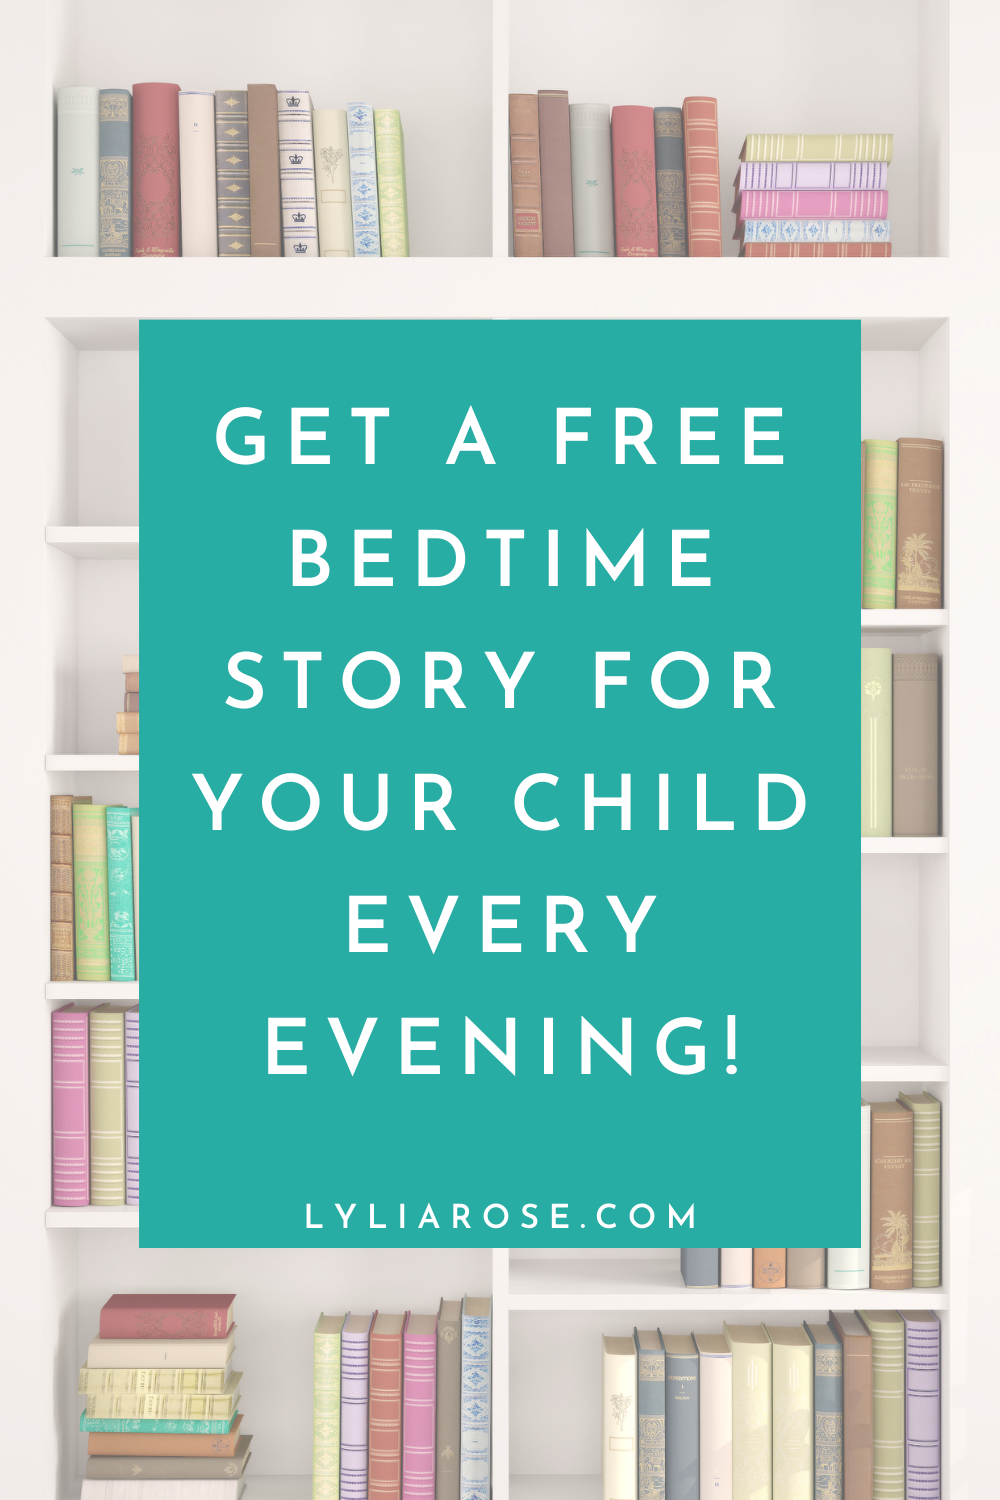 Get a FREE bedtime story for your child every evening